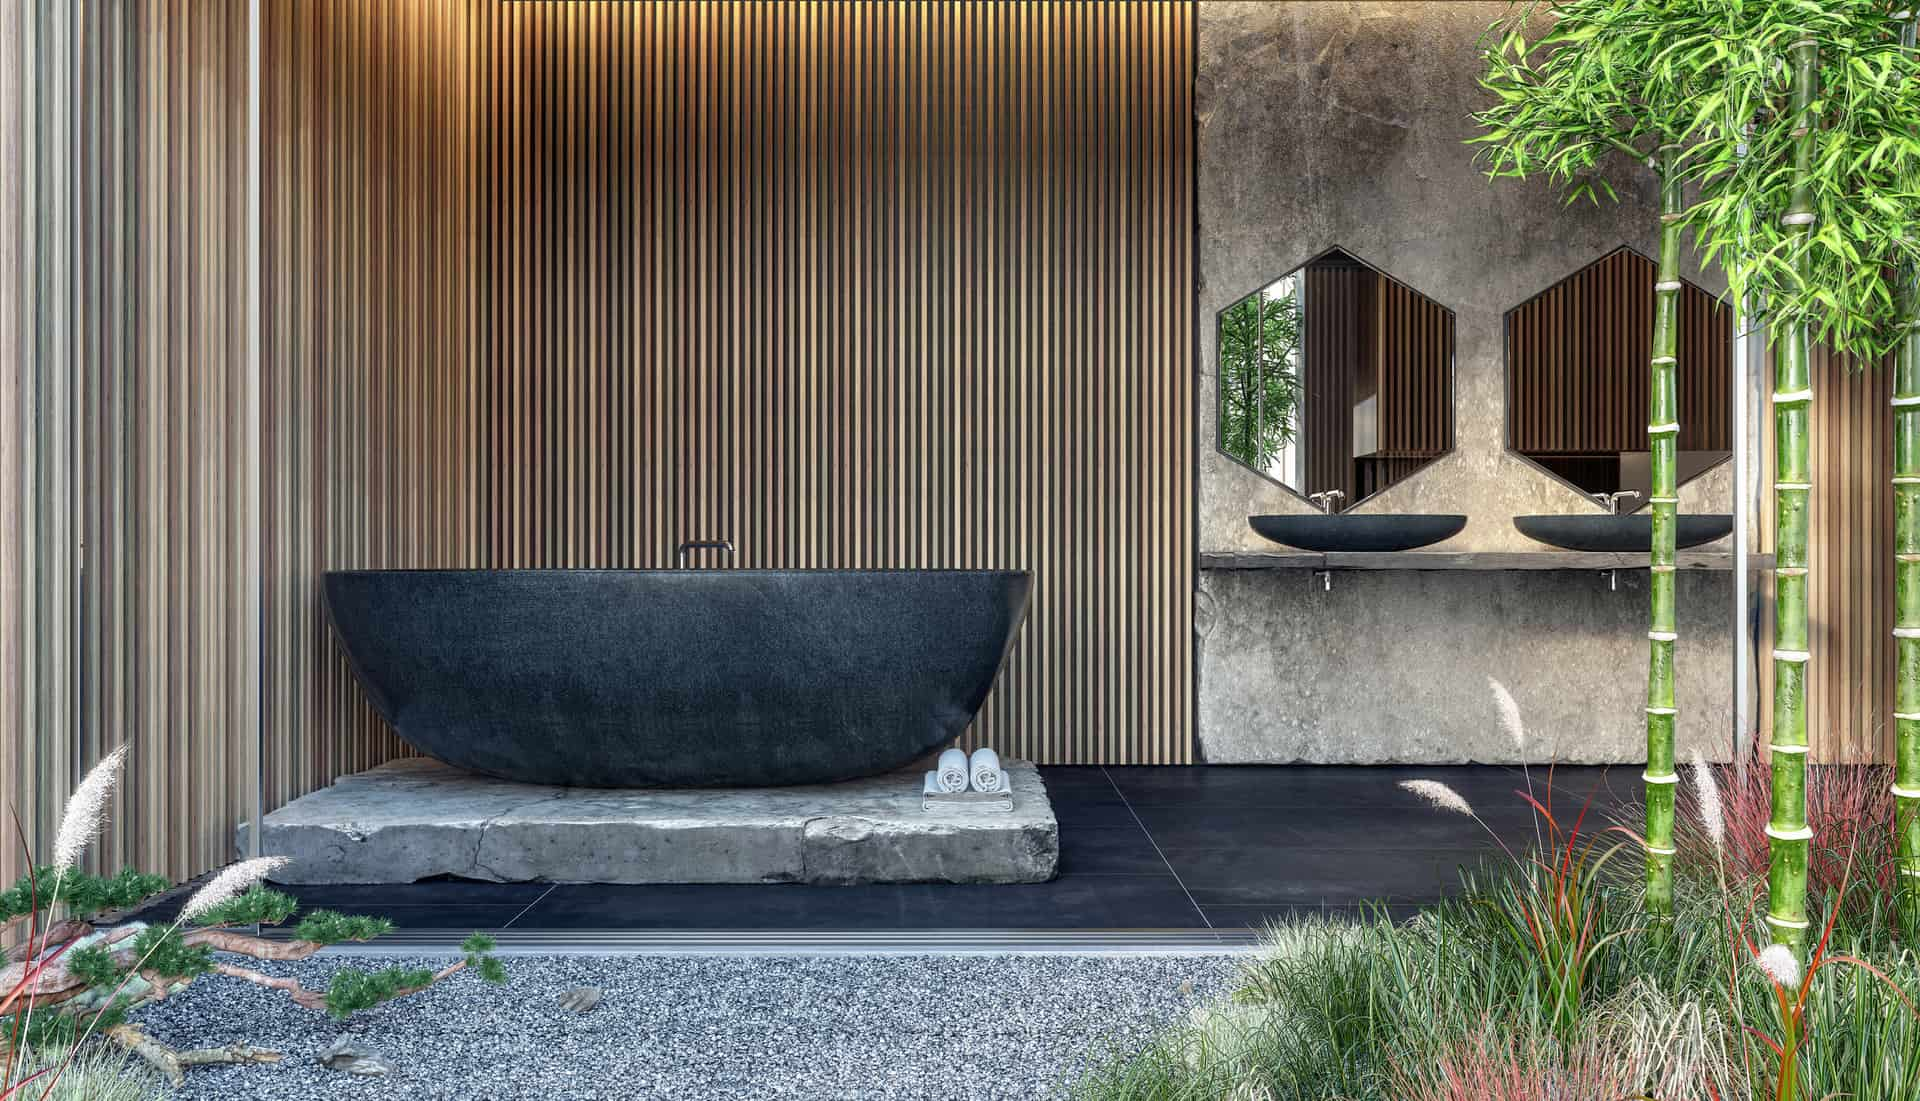 Modern interior design of bathroom with black marble bathtub and wooden wall panels 3D Rendering